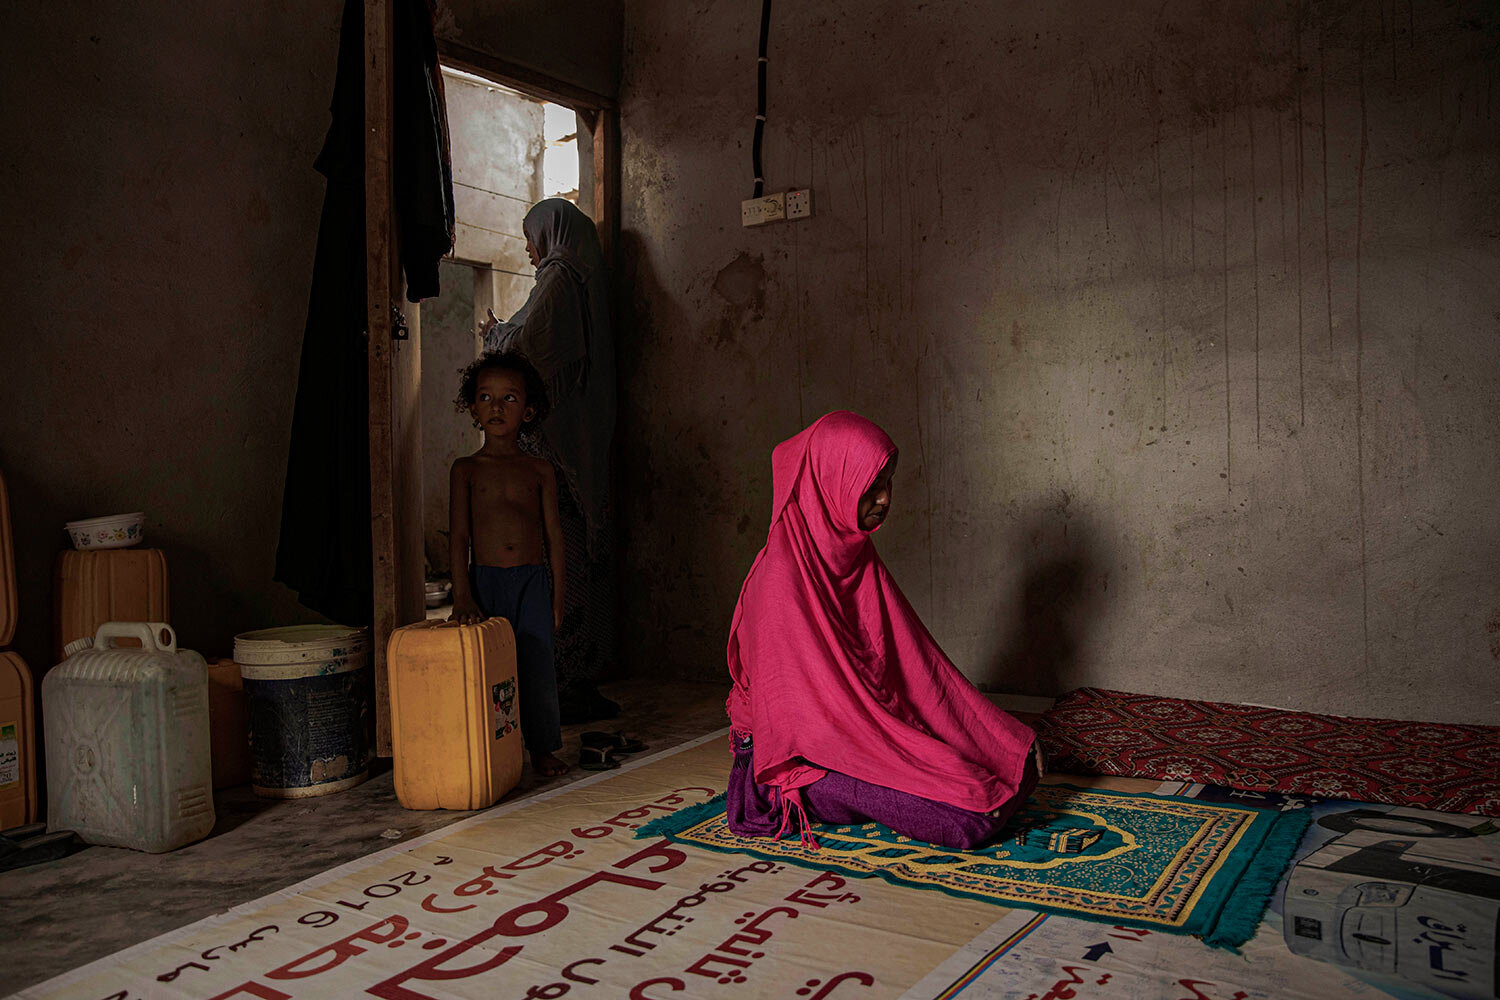 A 17-year-old Ethiopian migrant, a victim of rape, prays in Basateen, a district of Aden, Yemen. She says she had been raped more times than she can count. (AP Photo/Nariman El-Mofty)